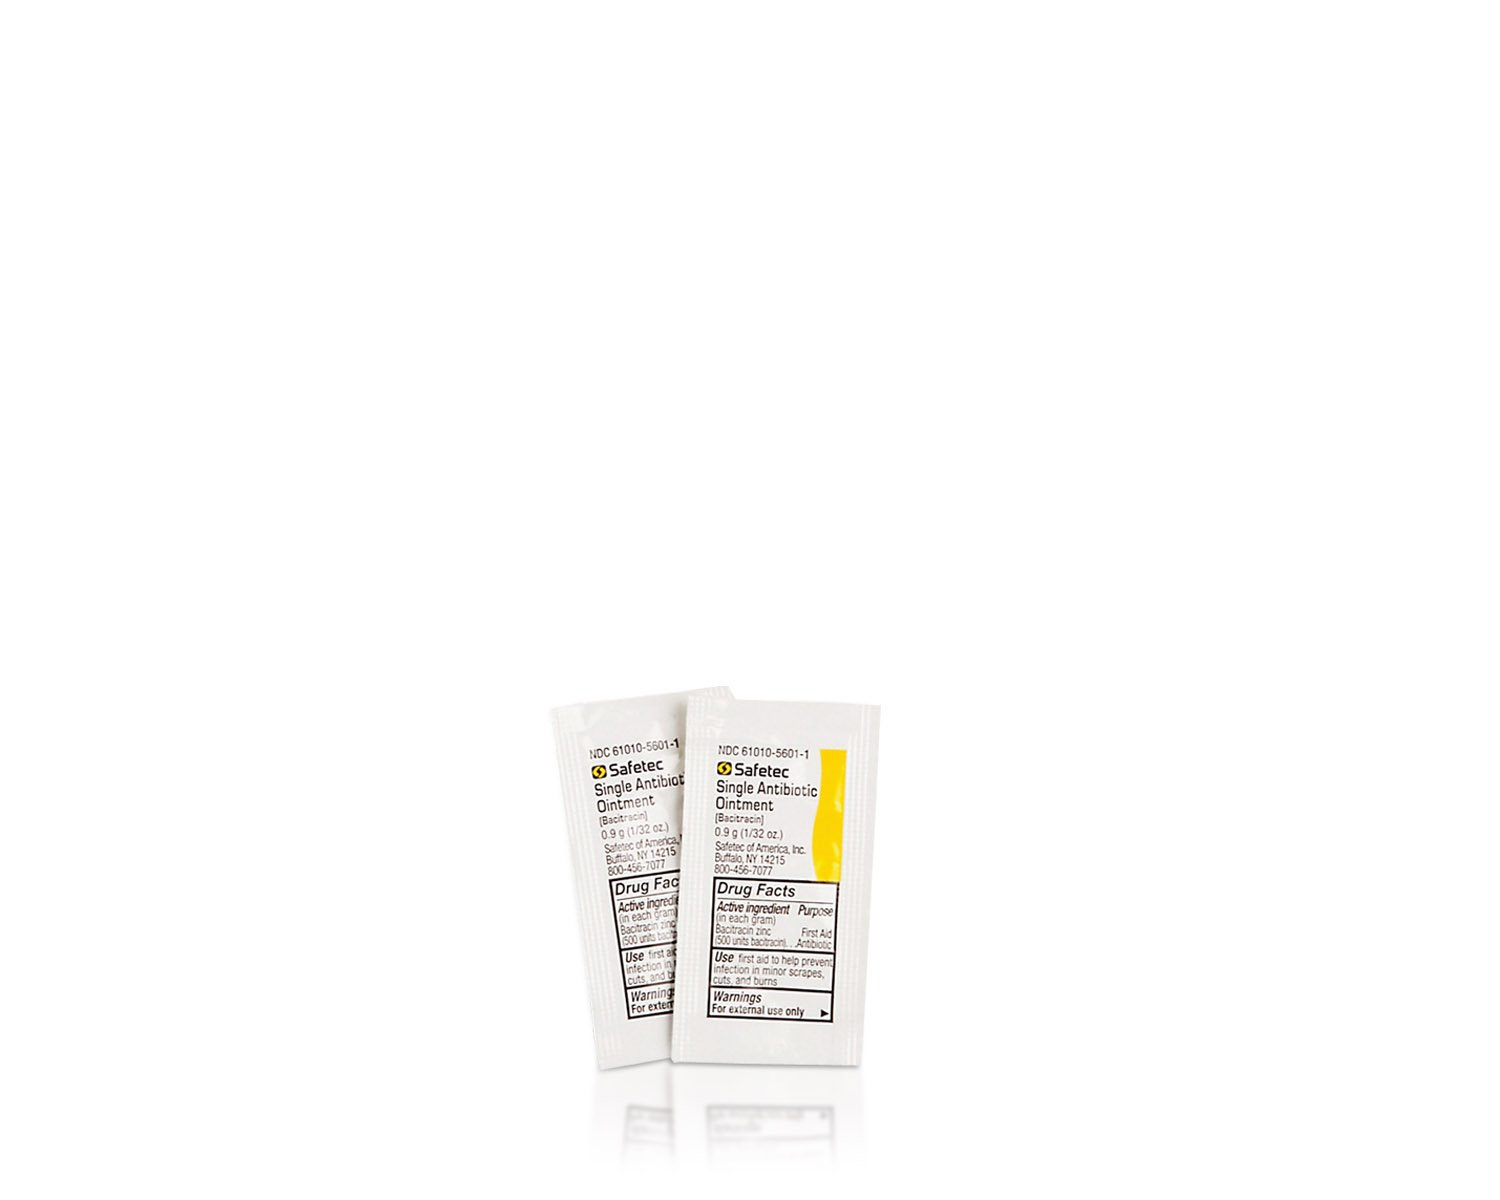 Safetec Antibiotic (Bacitracin) Ointment, .9 g. pouch (bulk package - 2000 count) by Safetec